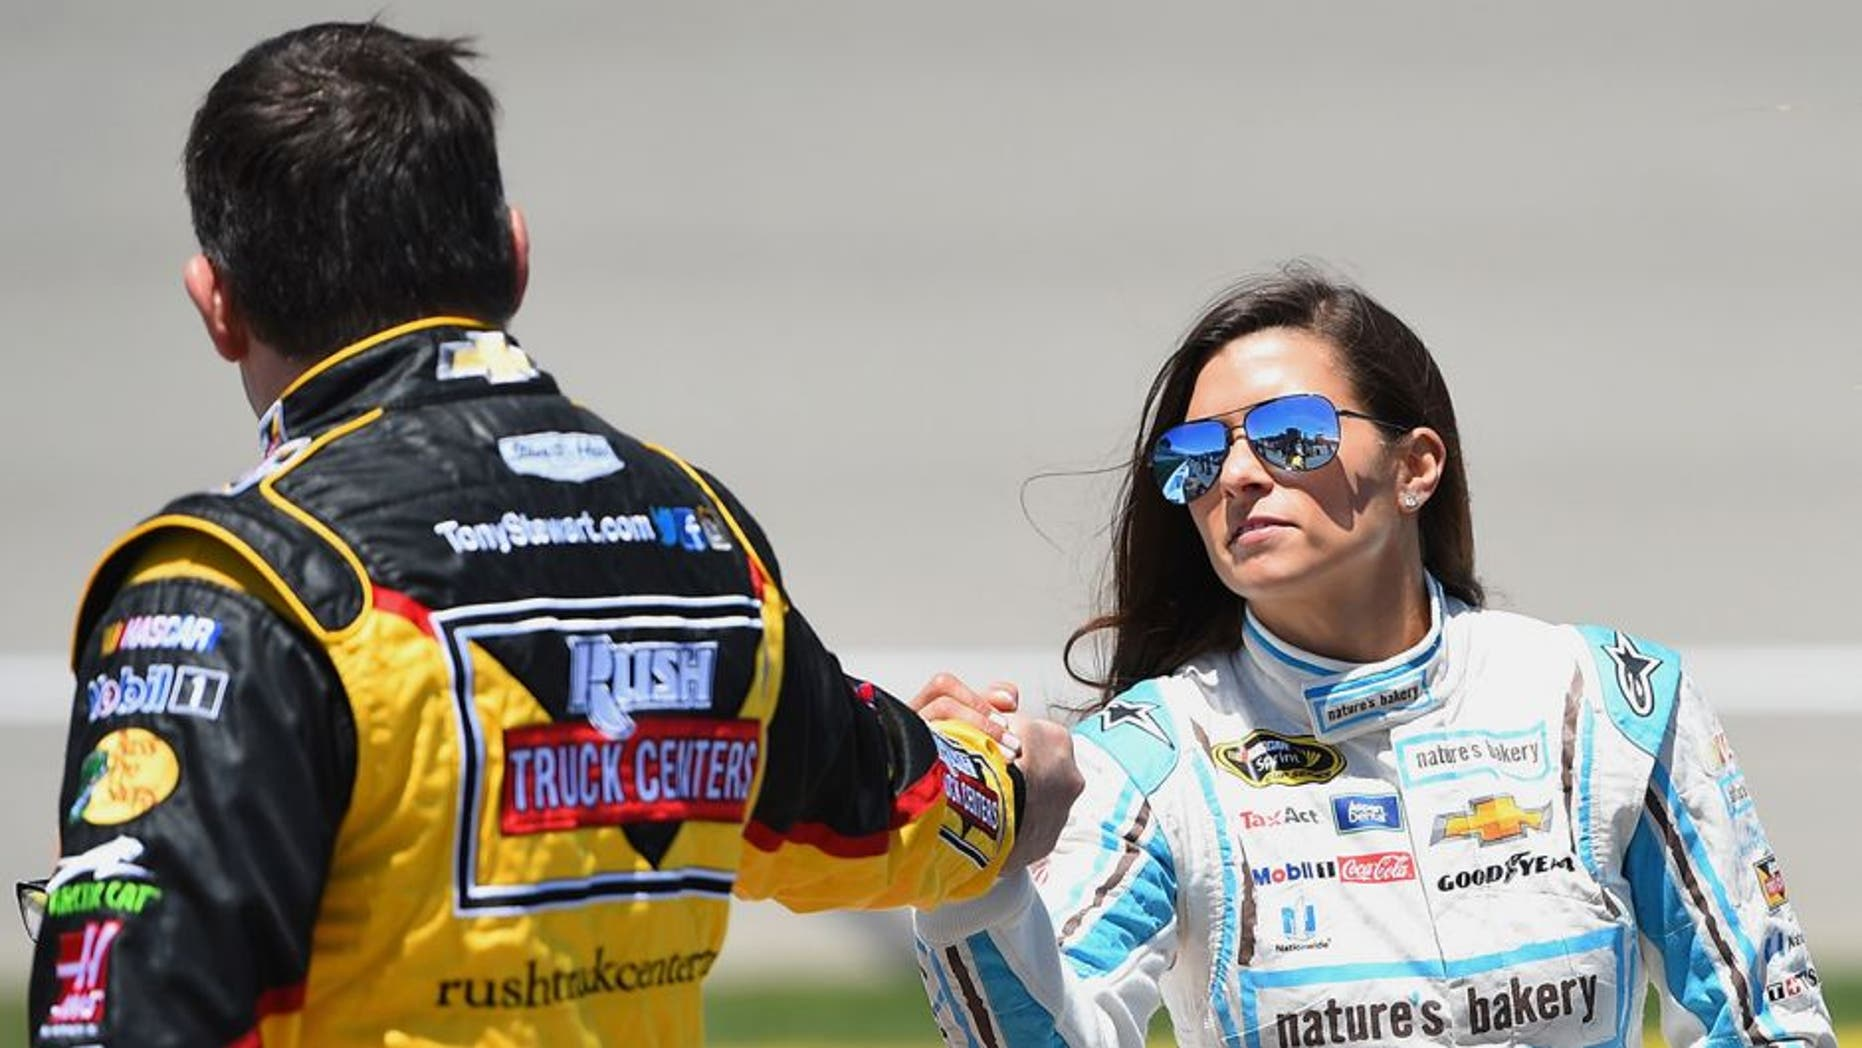 BROOKLYN, MI - JUNE 12: (L-R) Tony Stewart, driver of the #14 Rush Truck Centers/Mobil 1 Chevrolet, talks to Danica Patrick, driver of the #10 Nature's Bakery Chevrolet, on the grid prior to the NASCAR Sprint Cup Series FireKeepers Casino 400 at Michigan International Speedway on June 12, 2016 in Brooklyn, Michigan. (Photo by Josh Hedges/Getty Images )